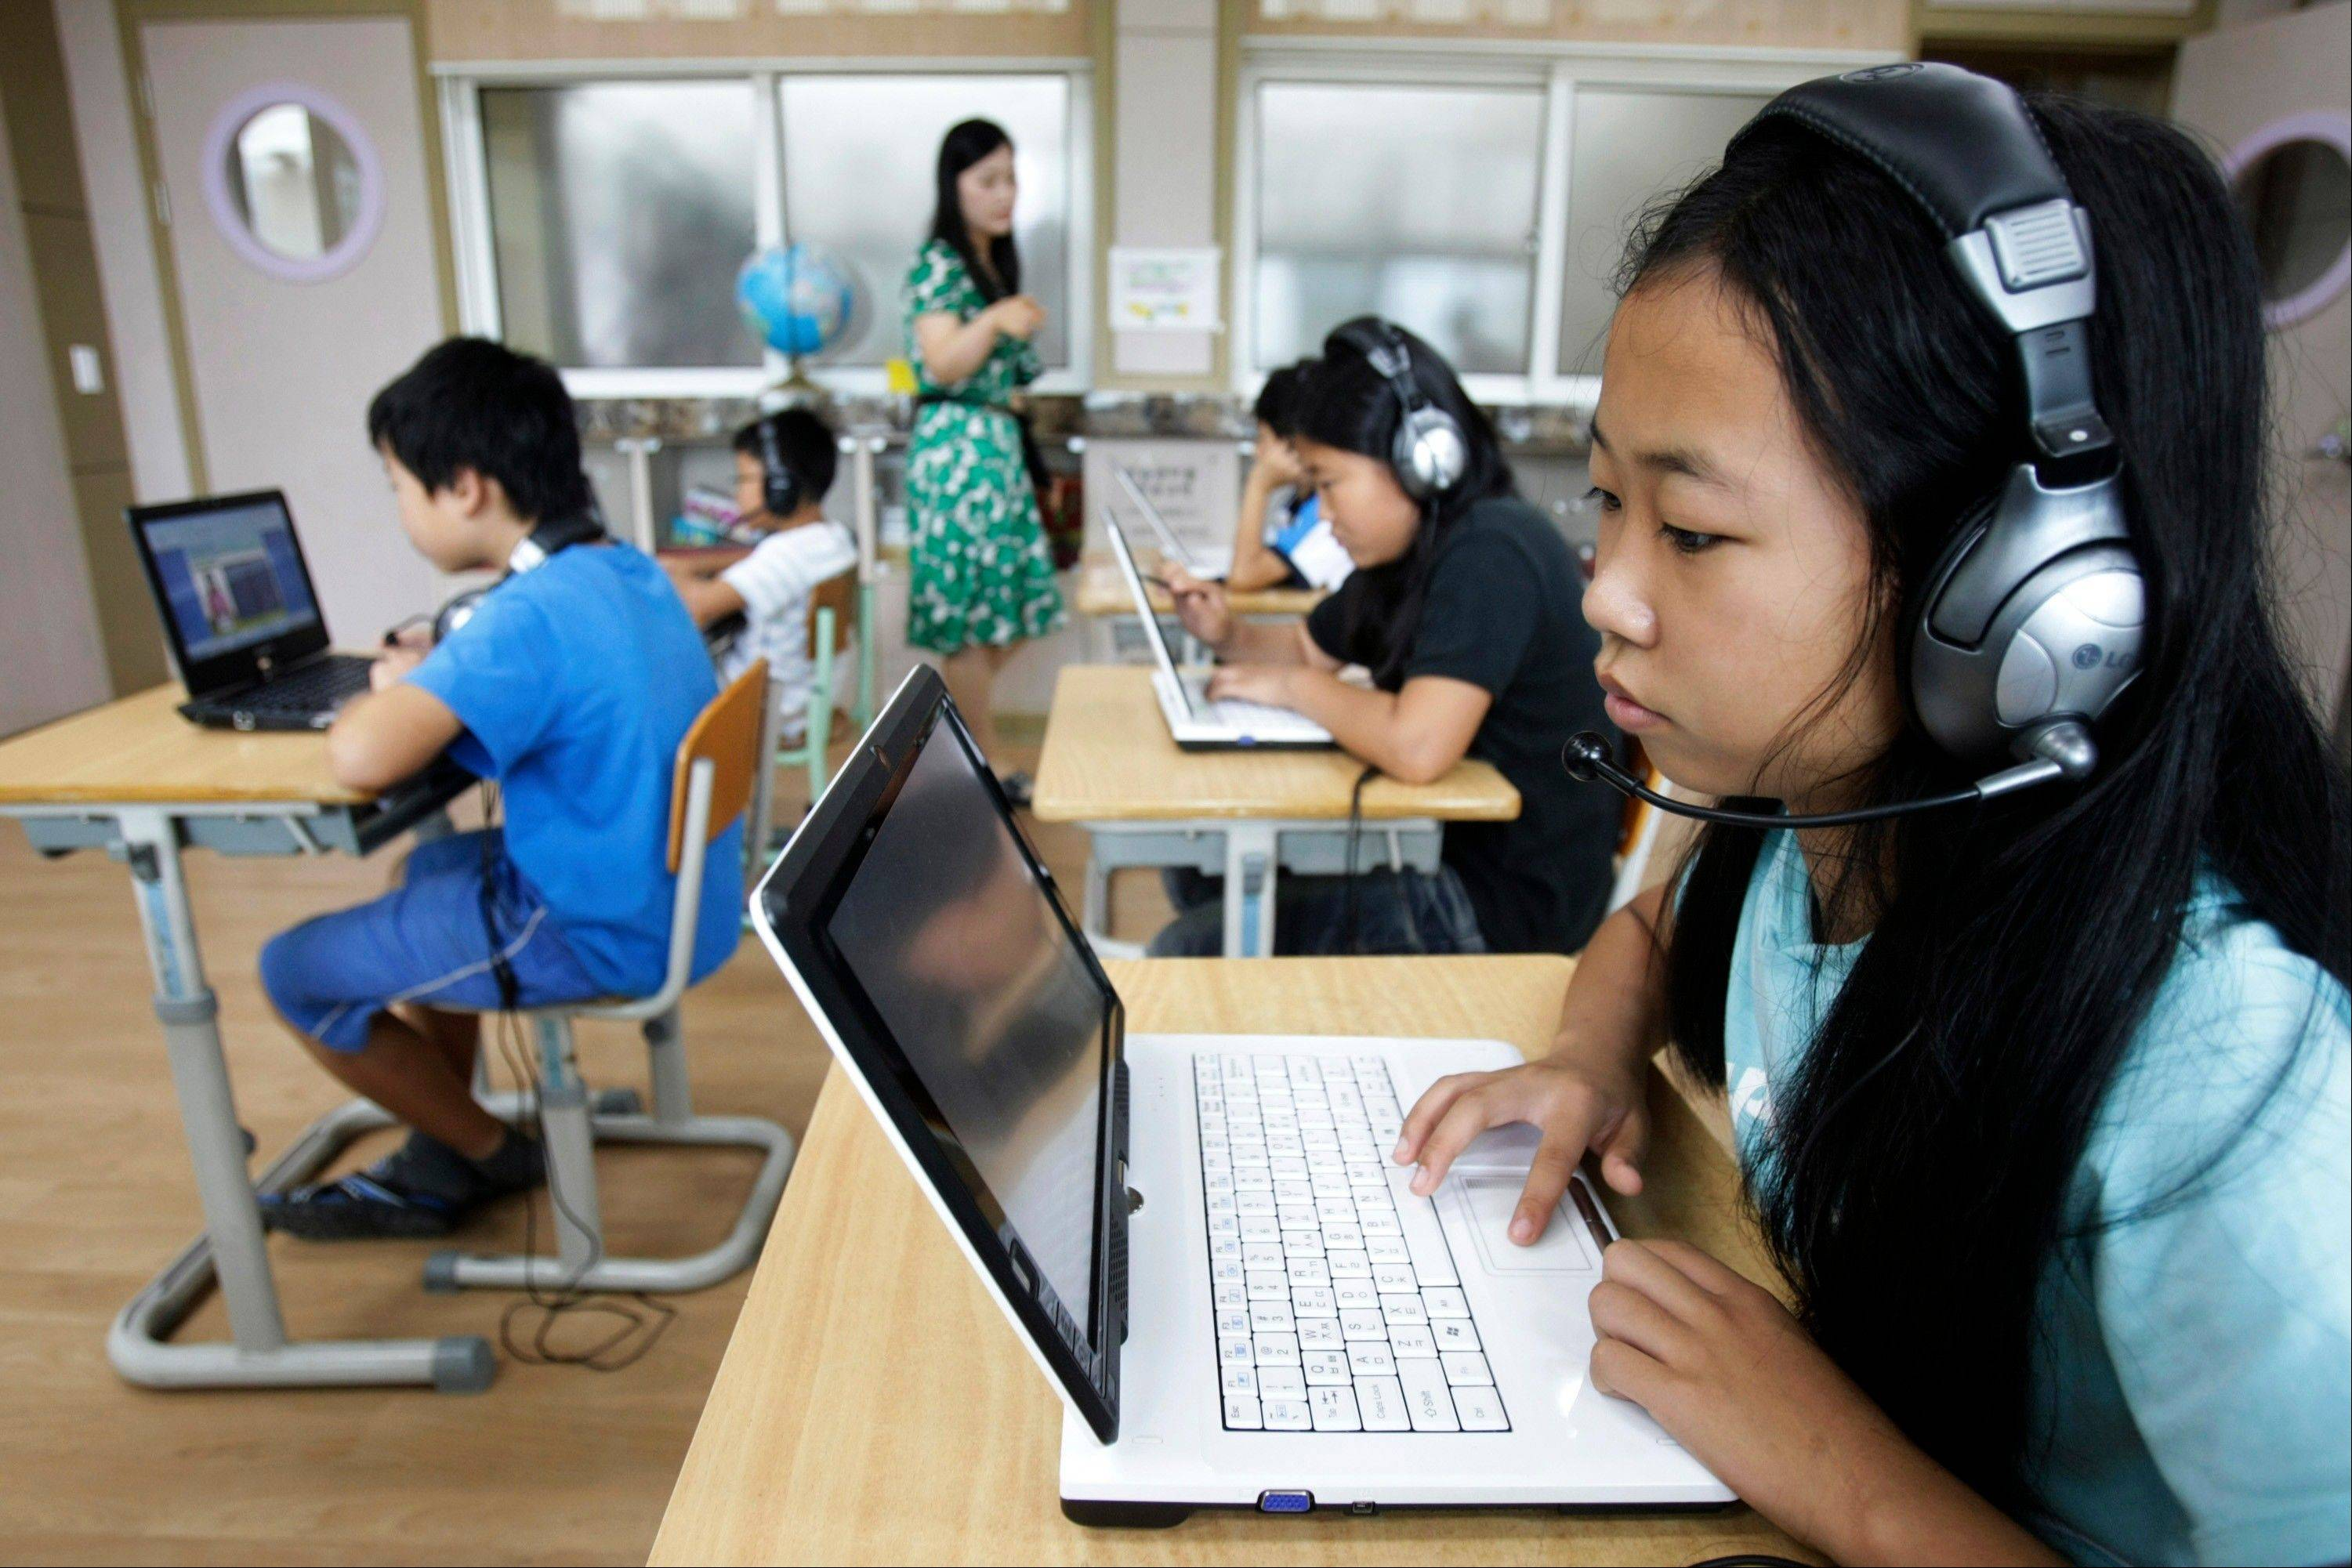 South Korean student Jang Woo-dam, right, and her classmates use tablet PCs to study in a class at Sosu Elementary School in Goesan, South Korea. The country is taking a $2 billion gamble that its students are ready to ditch paper textbooks in favor of tablet PCs as part of a vast digital scholastic network.